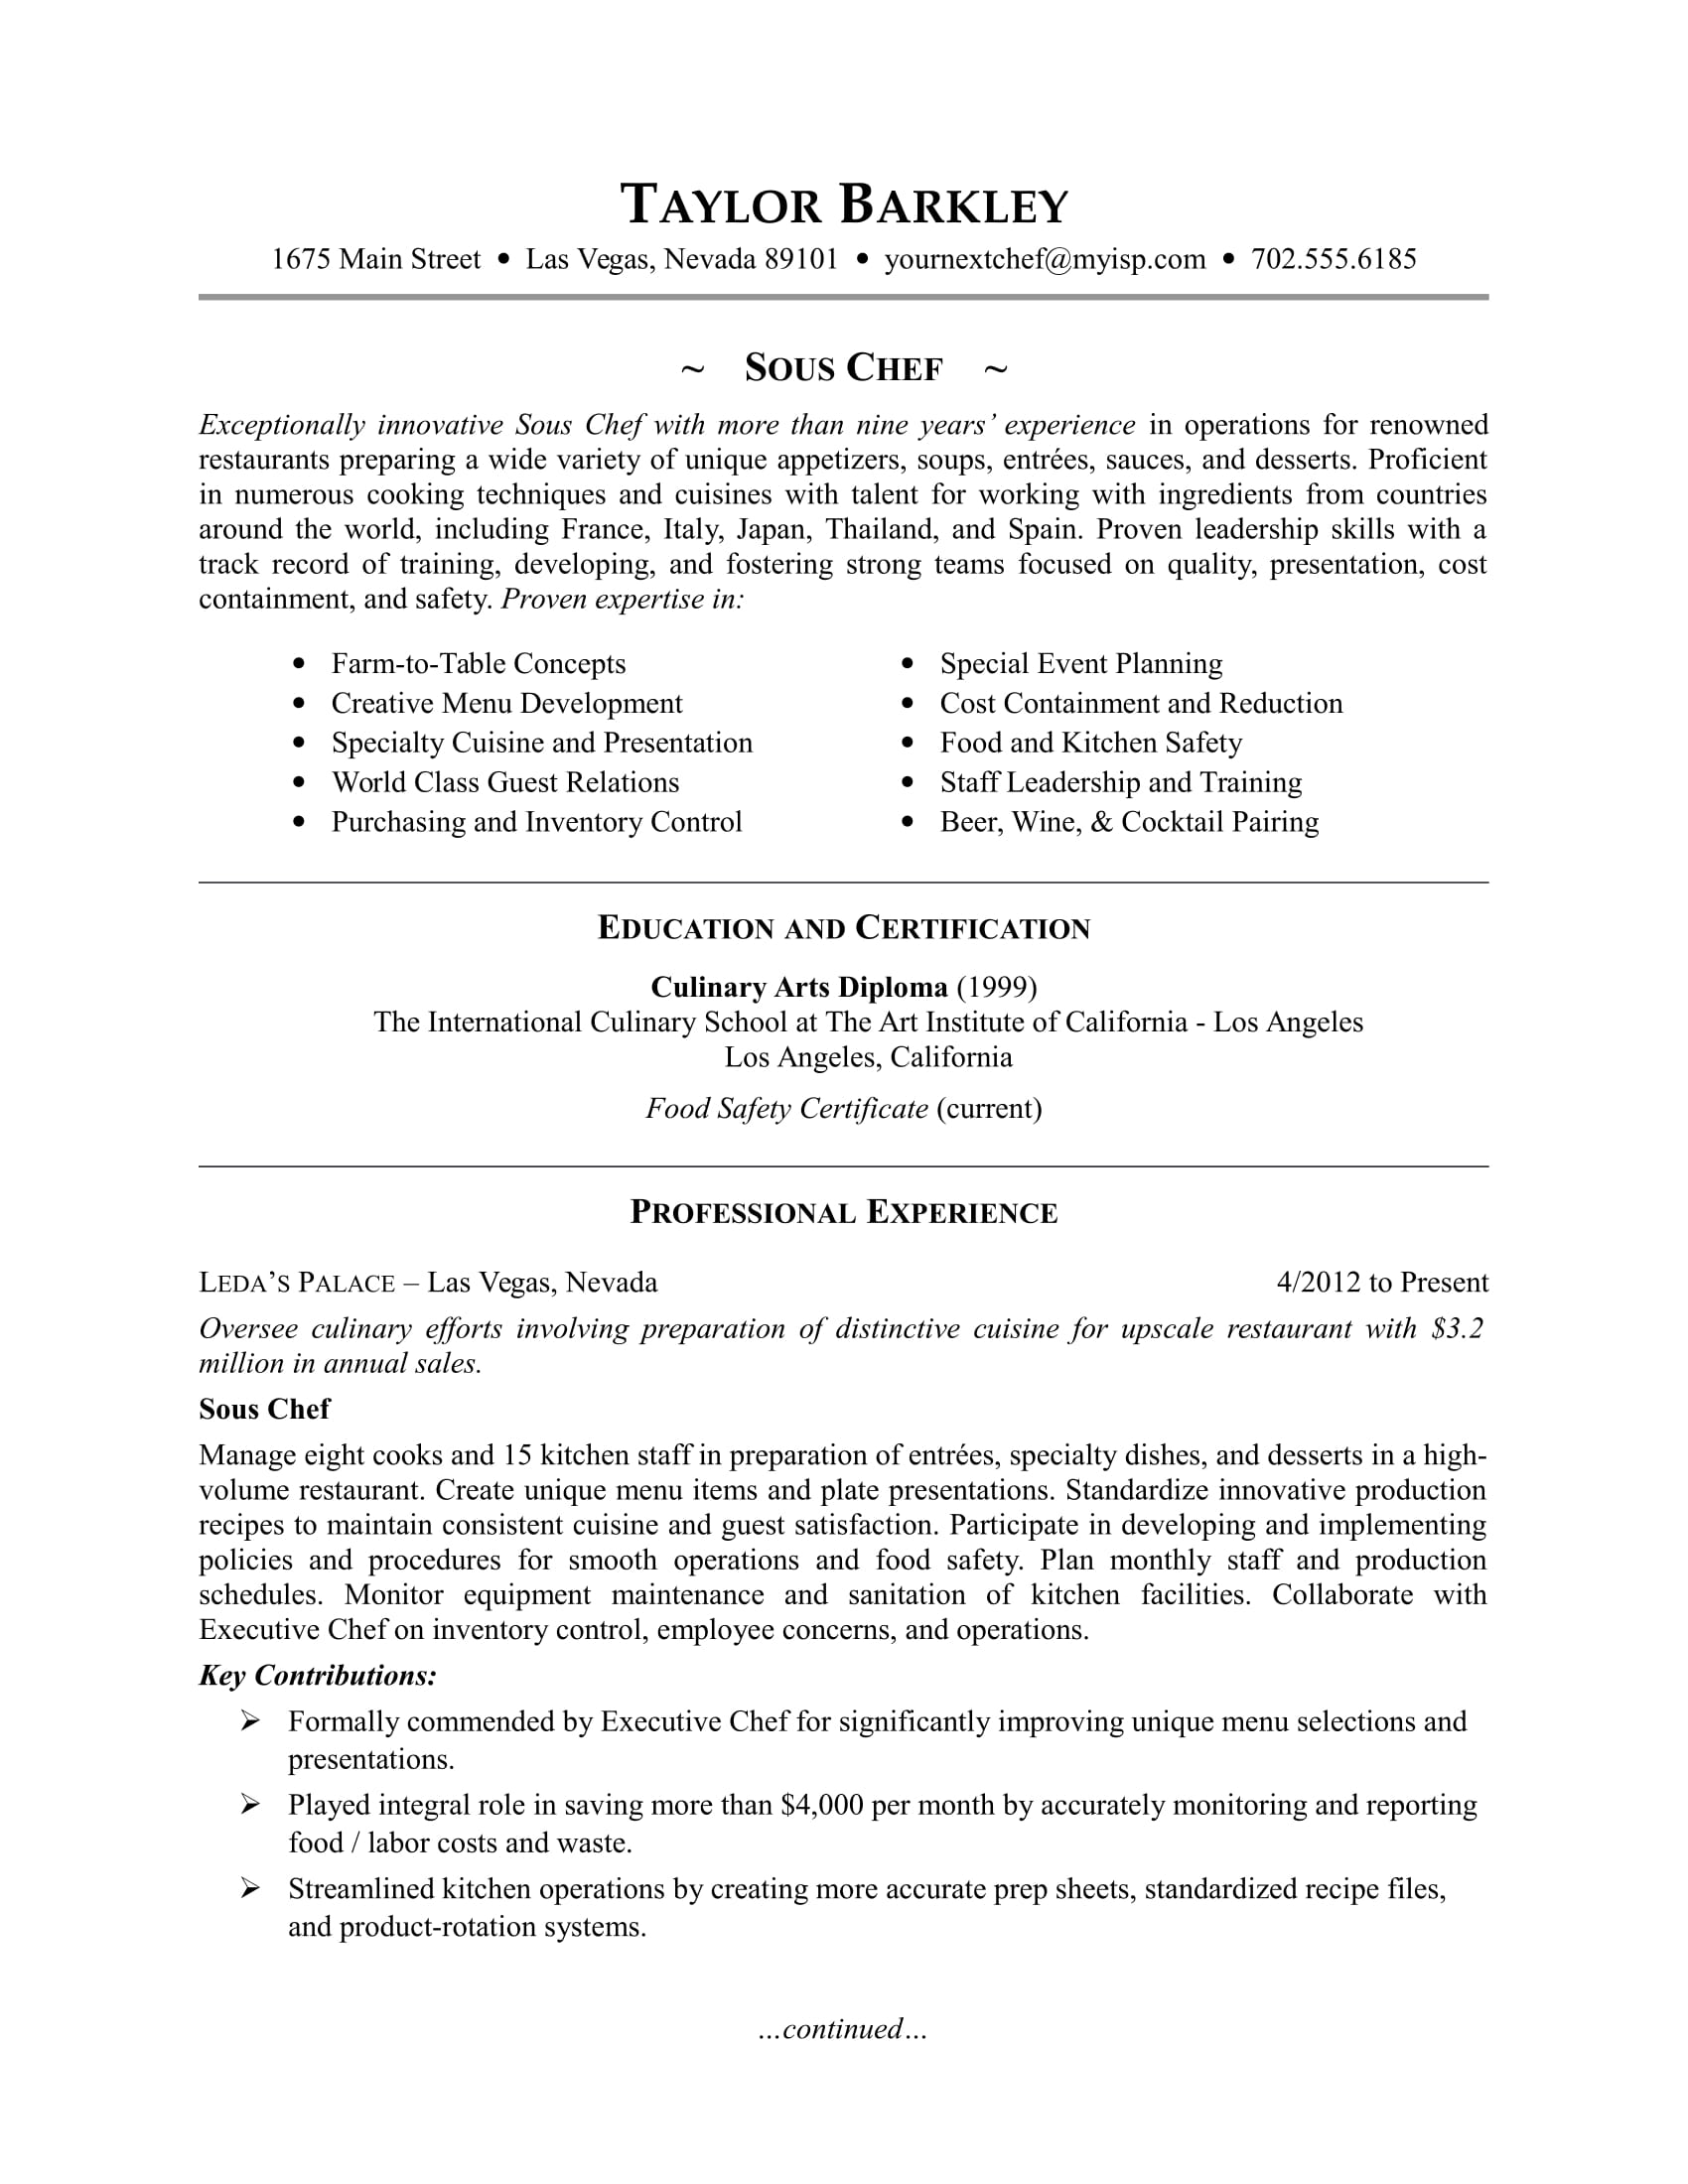 Sample Resume For A Sous Chef  Educational Resume Examples